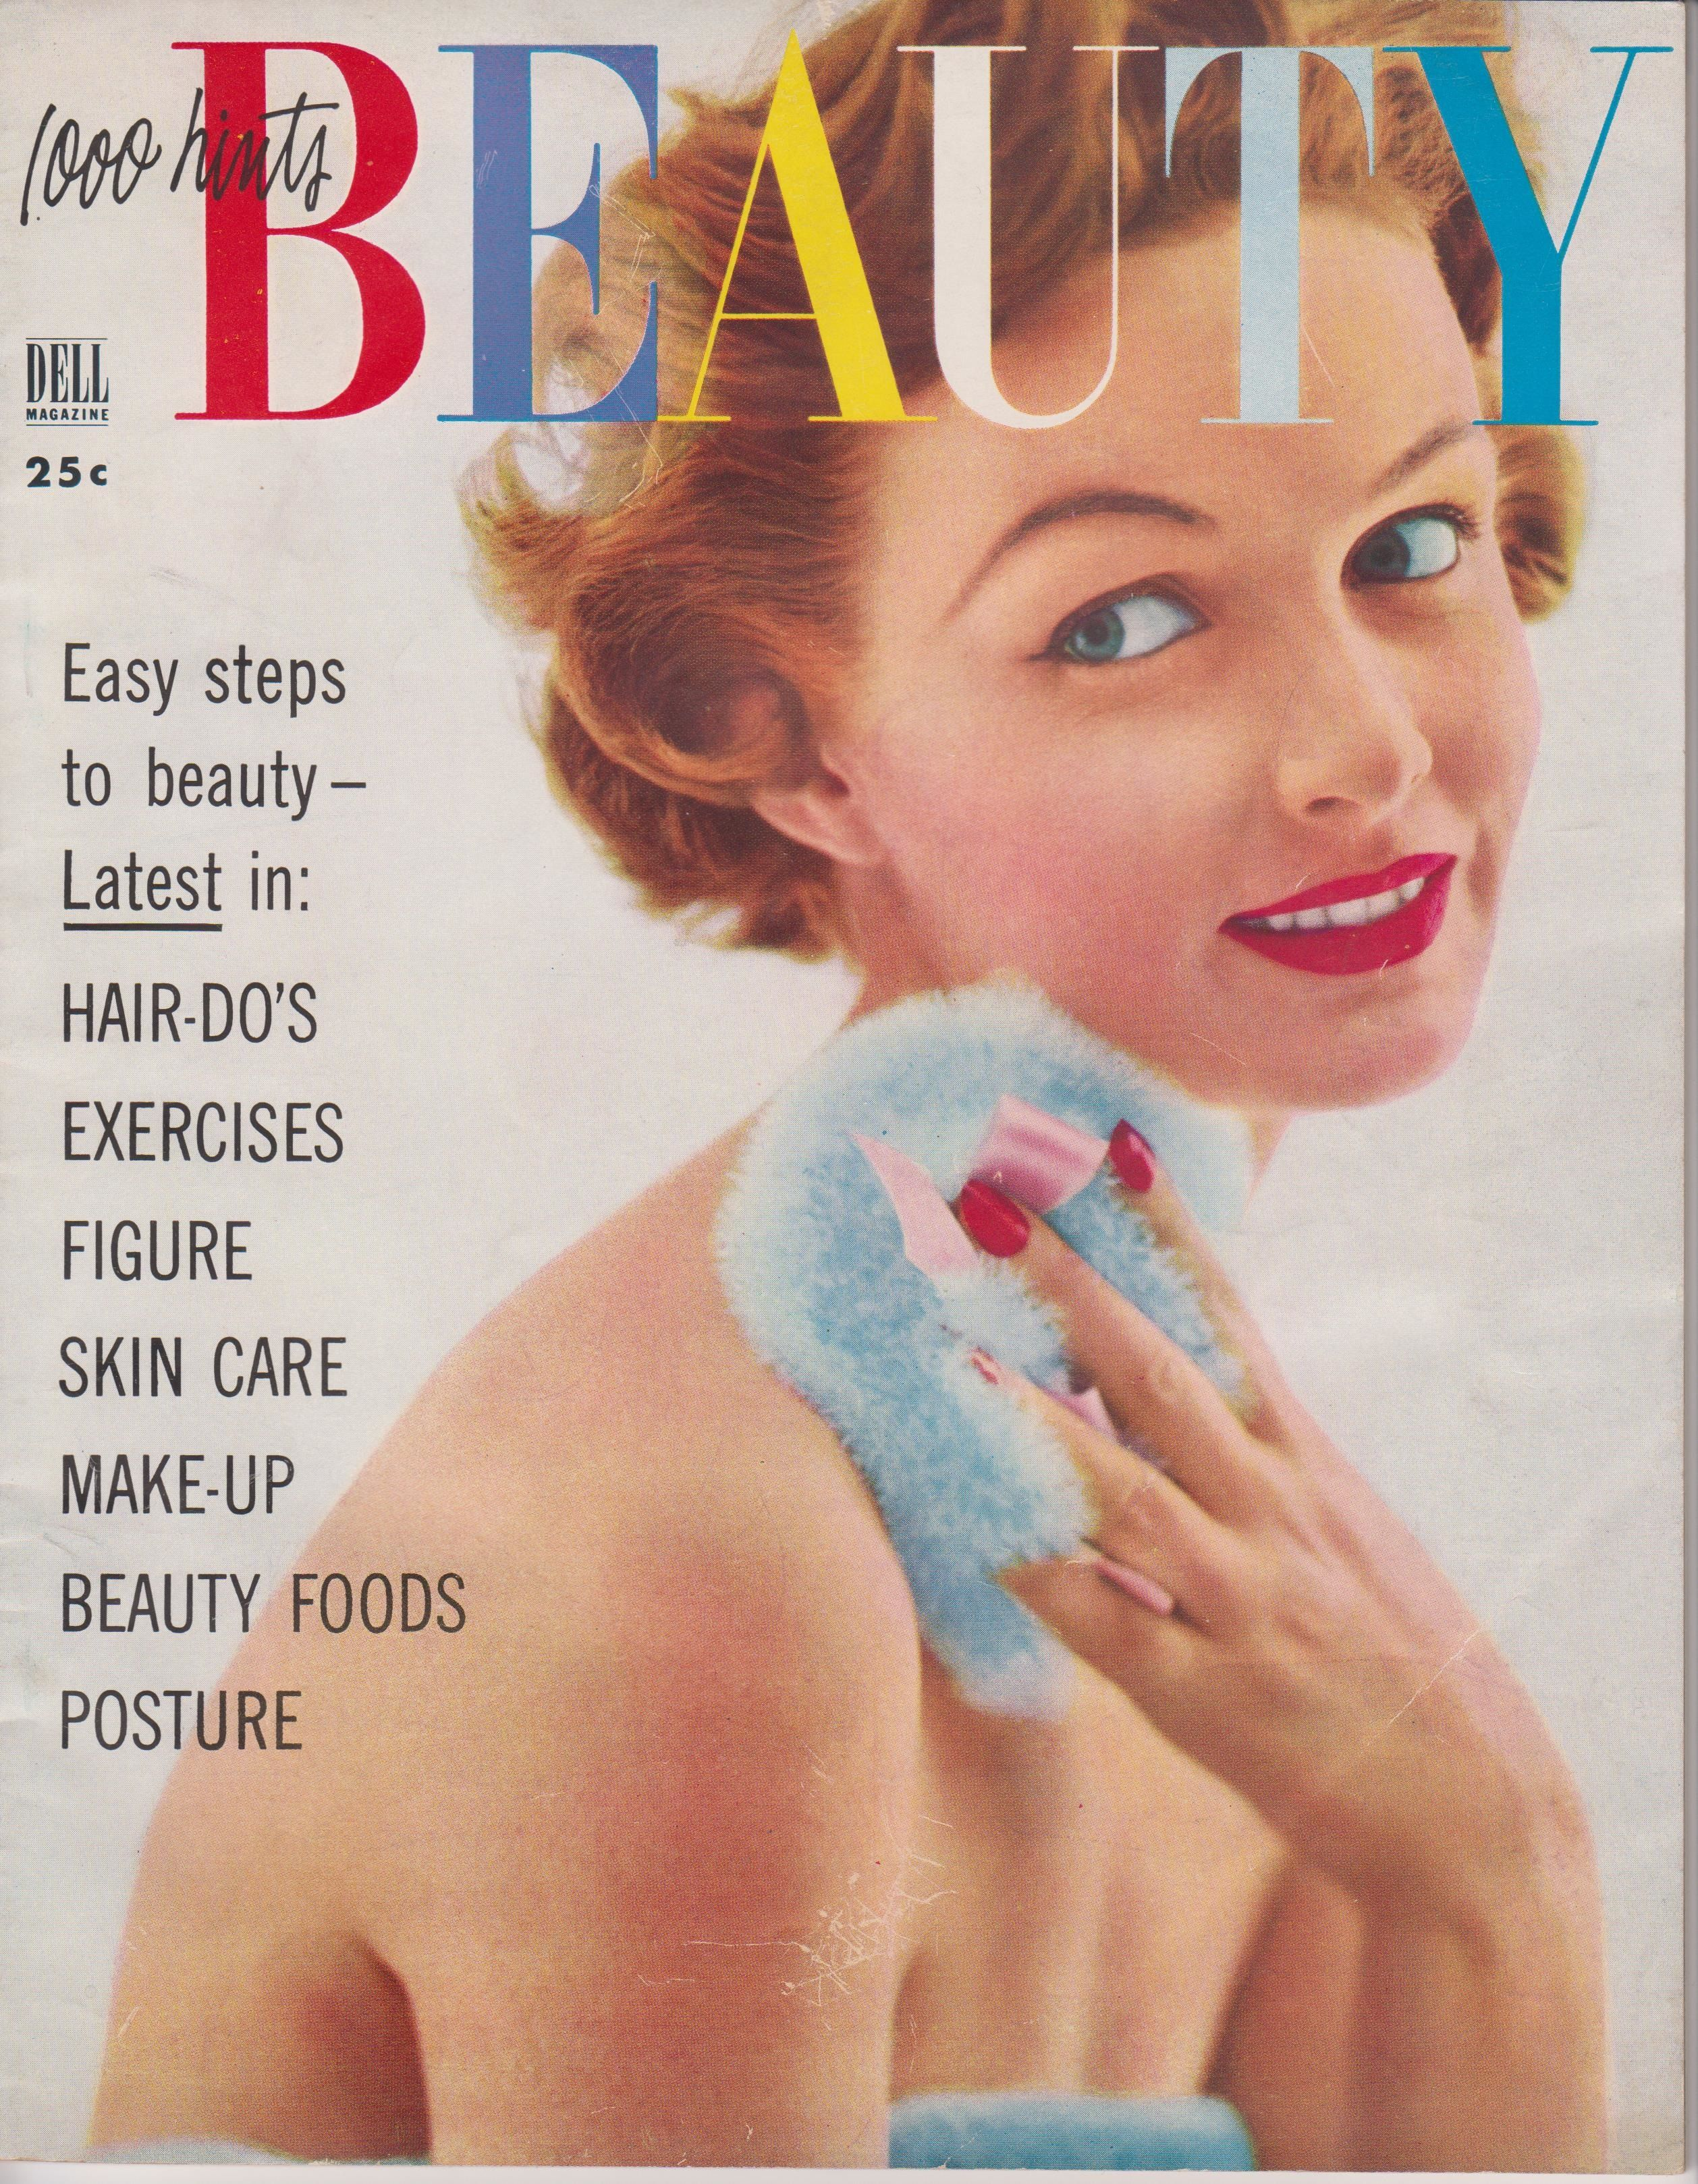 Beauty: 1000 Hints by Dell Publications 1953